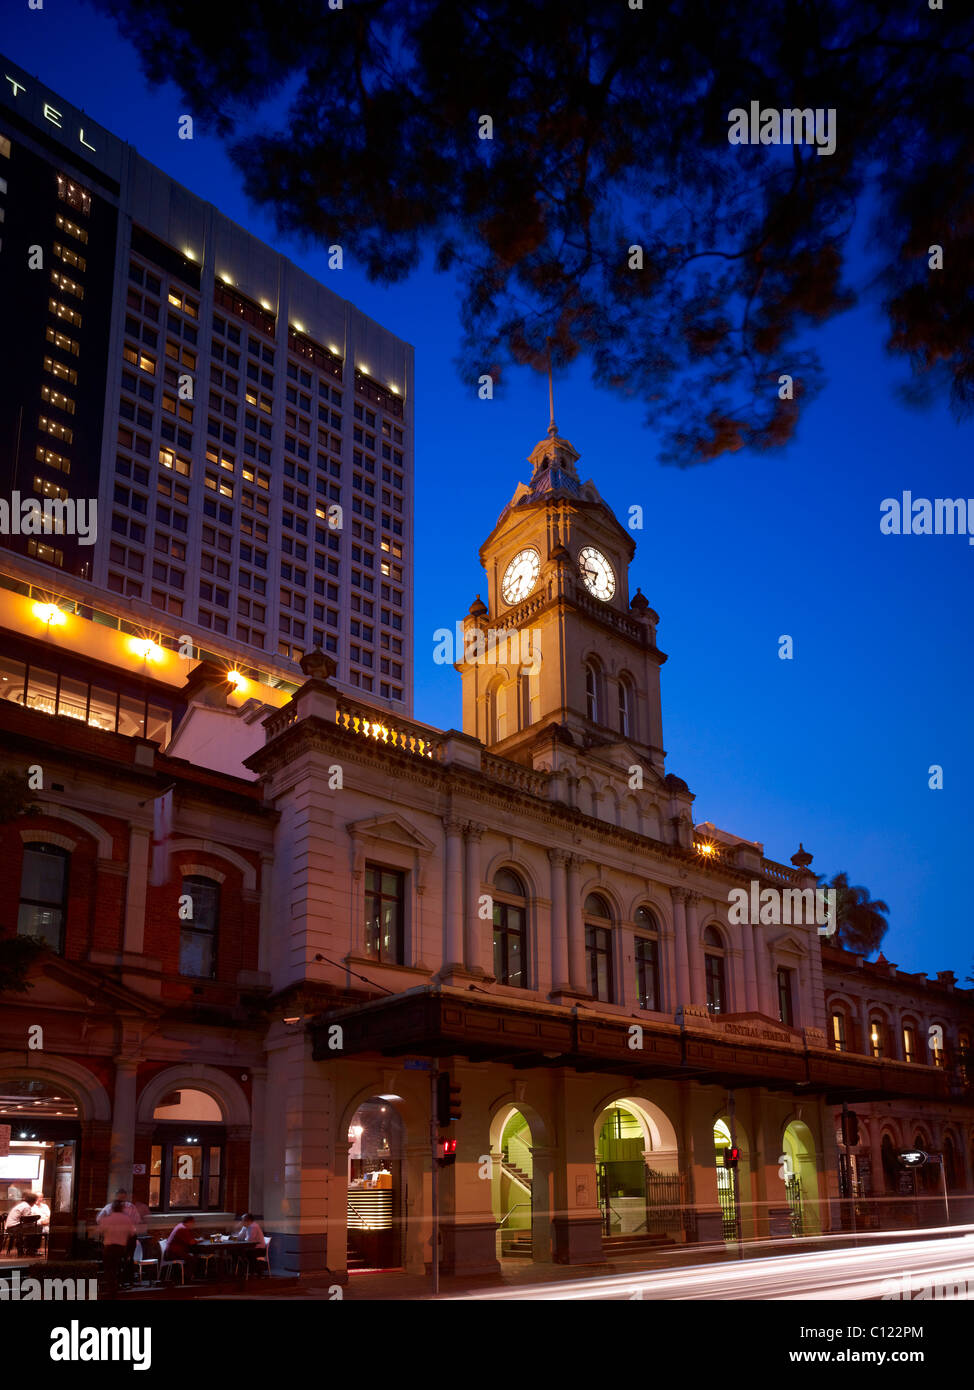 Brisbane Central Railway Station - Stock Image